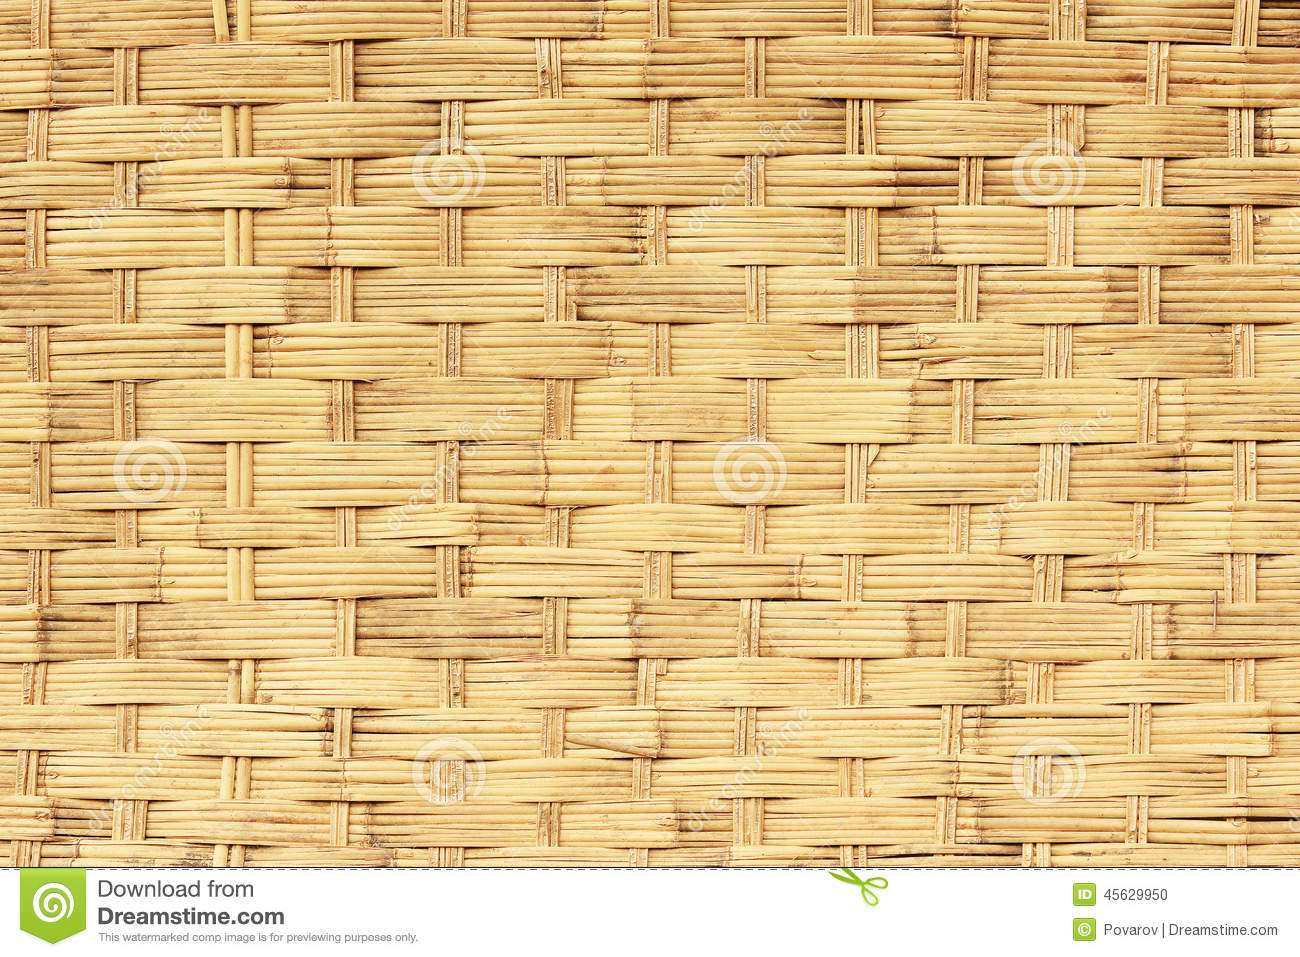 Texture of a wicker basket, background